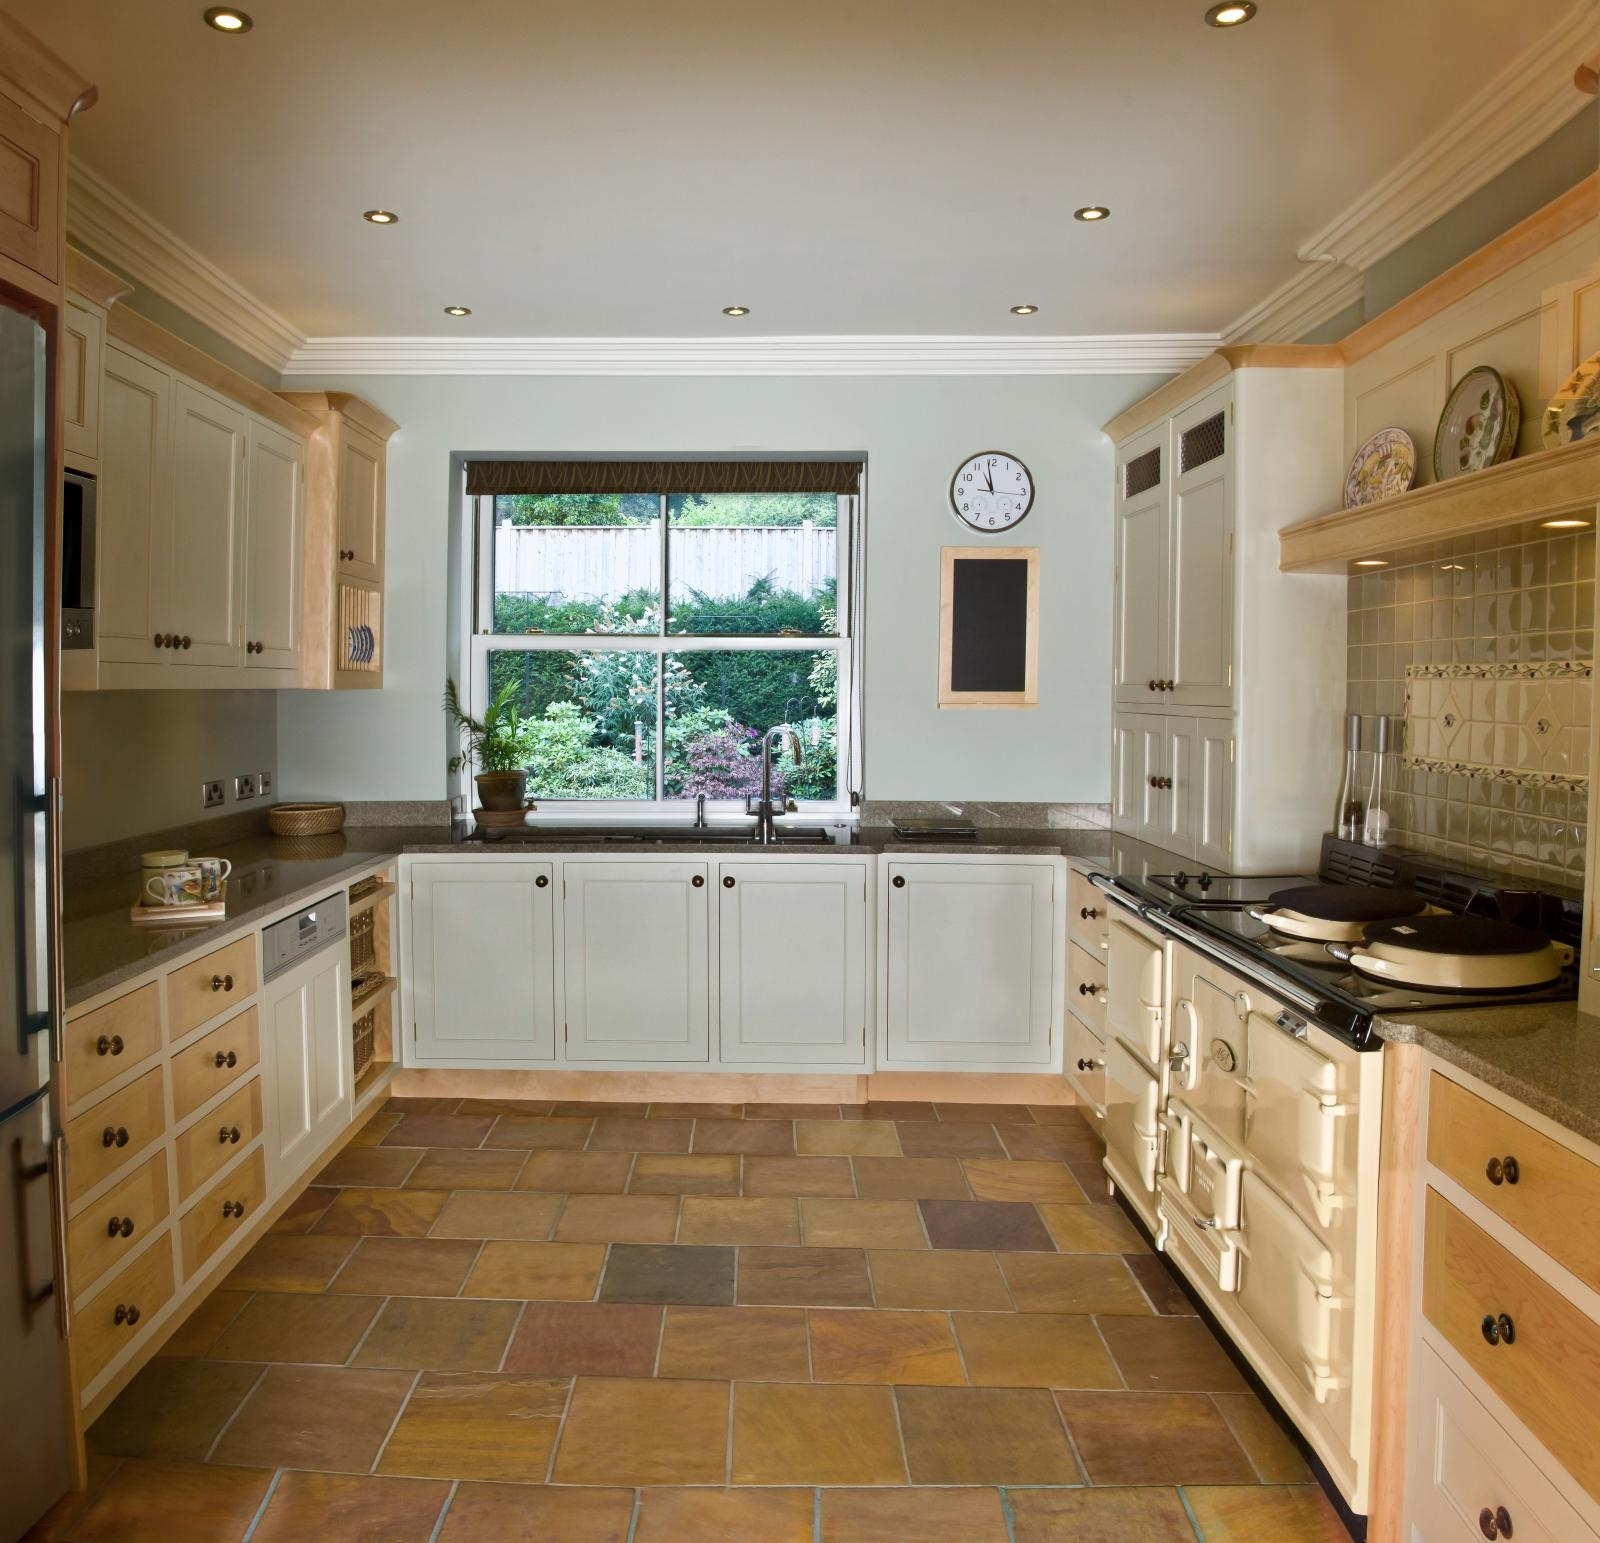 Bespoke Designed Painted KitchensPainted Kitchens